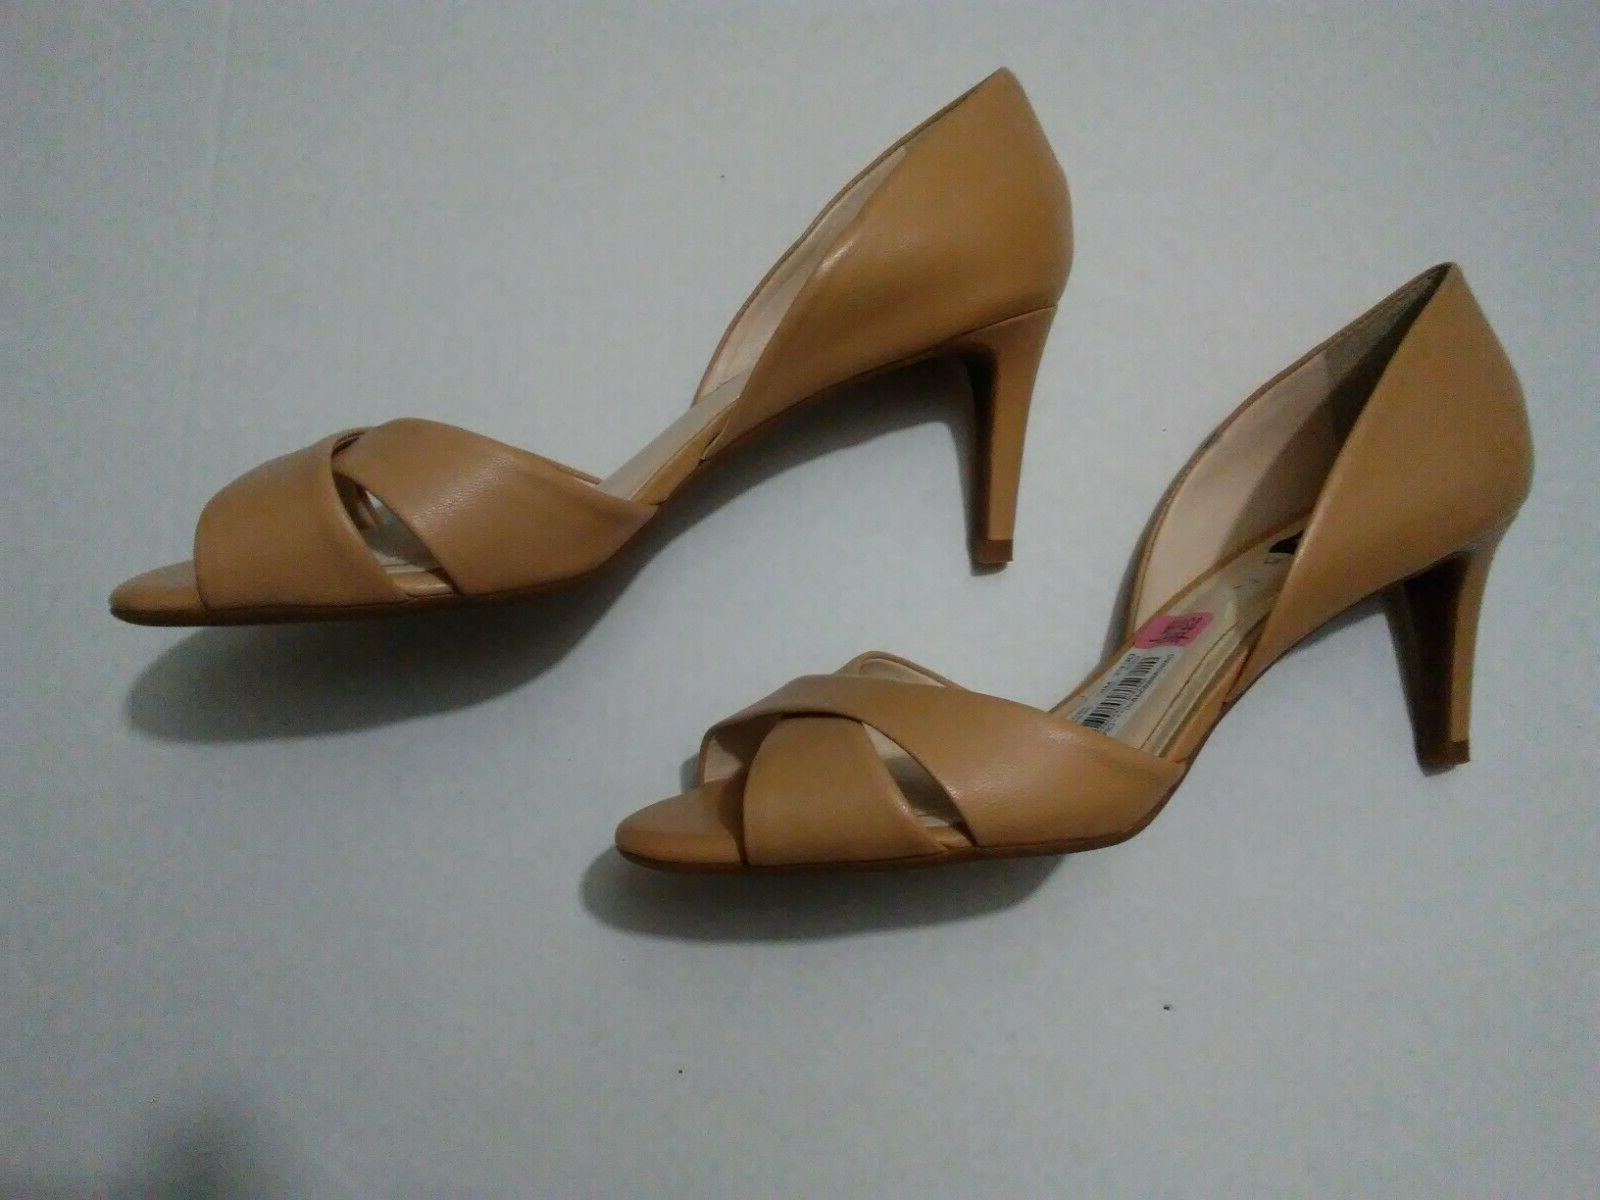 nude dress wedge strappy womens sandals 8